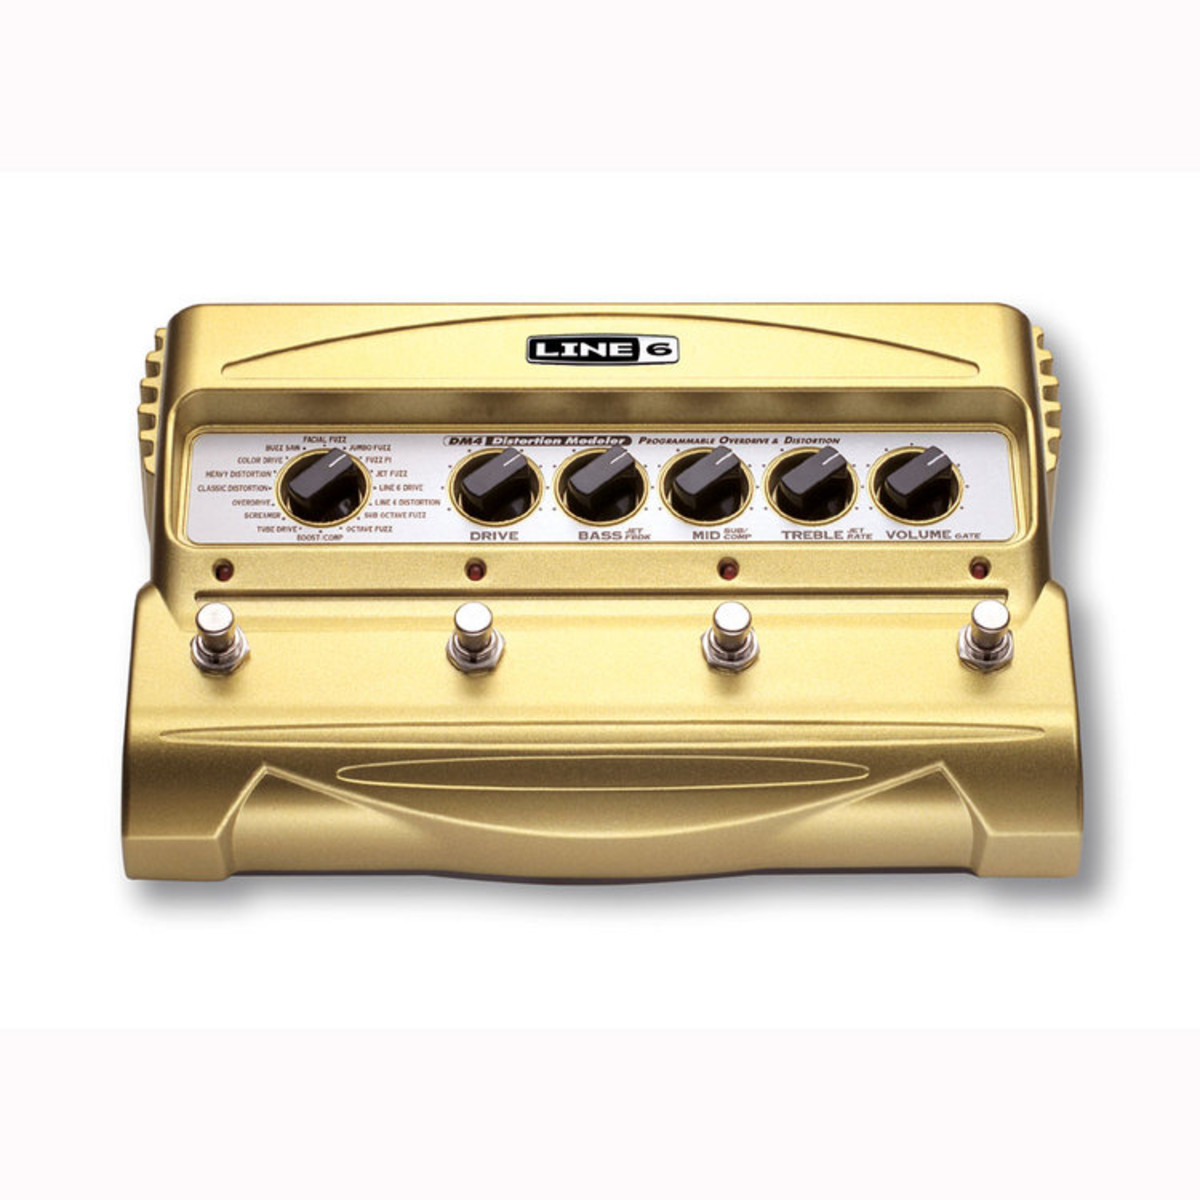 Line 6 DM4 Distortion Stompbox Modeling Pedal 1